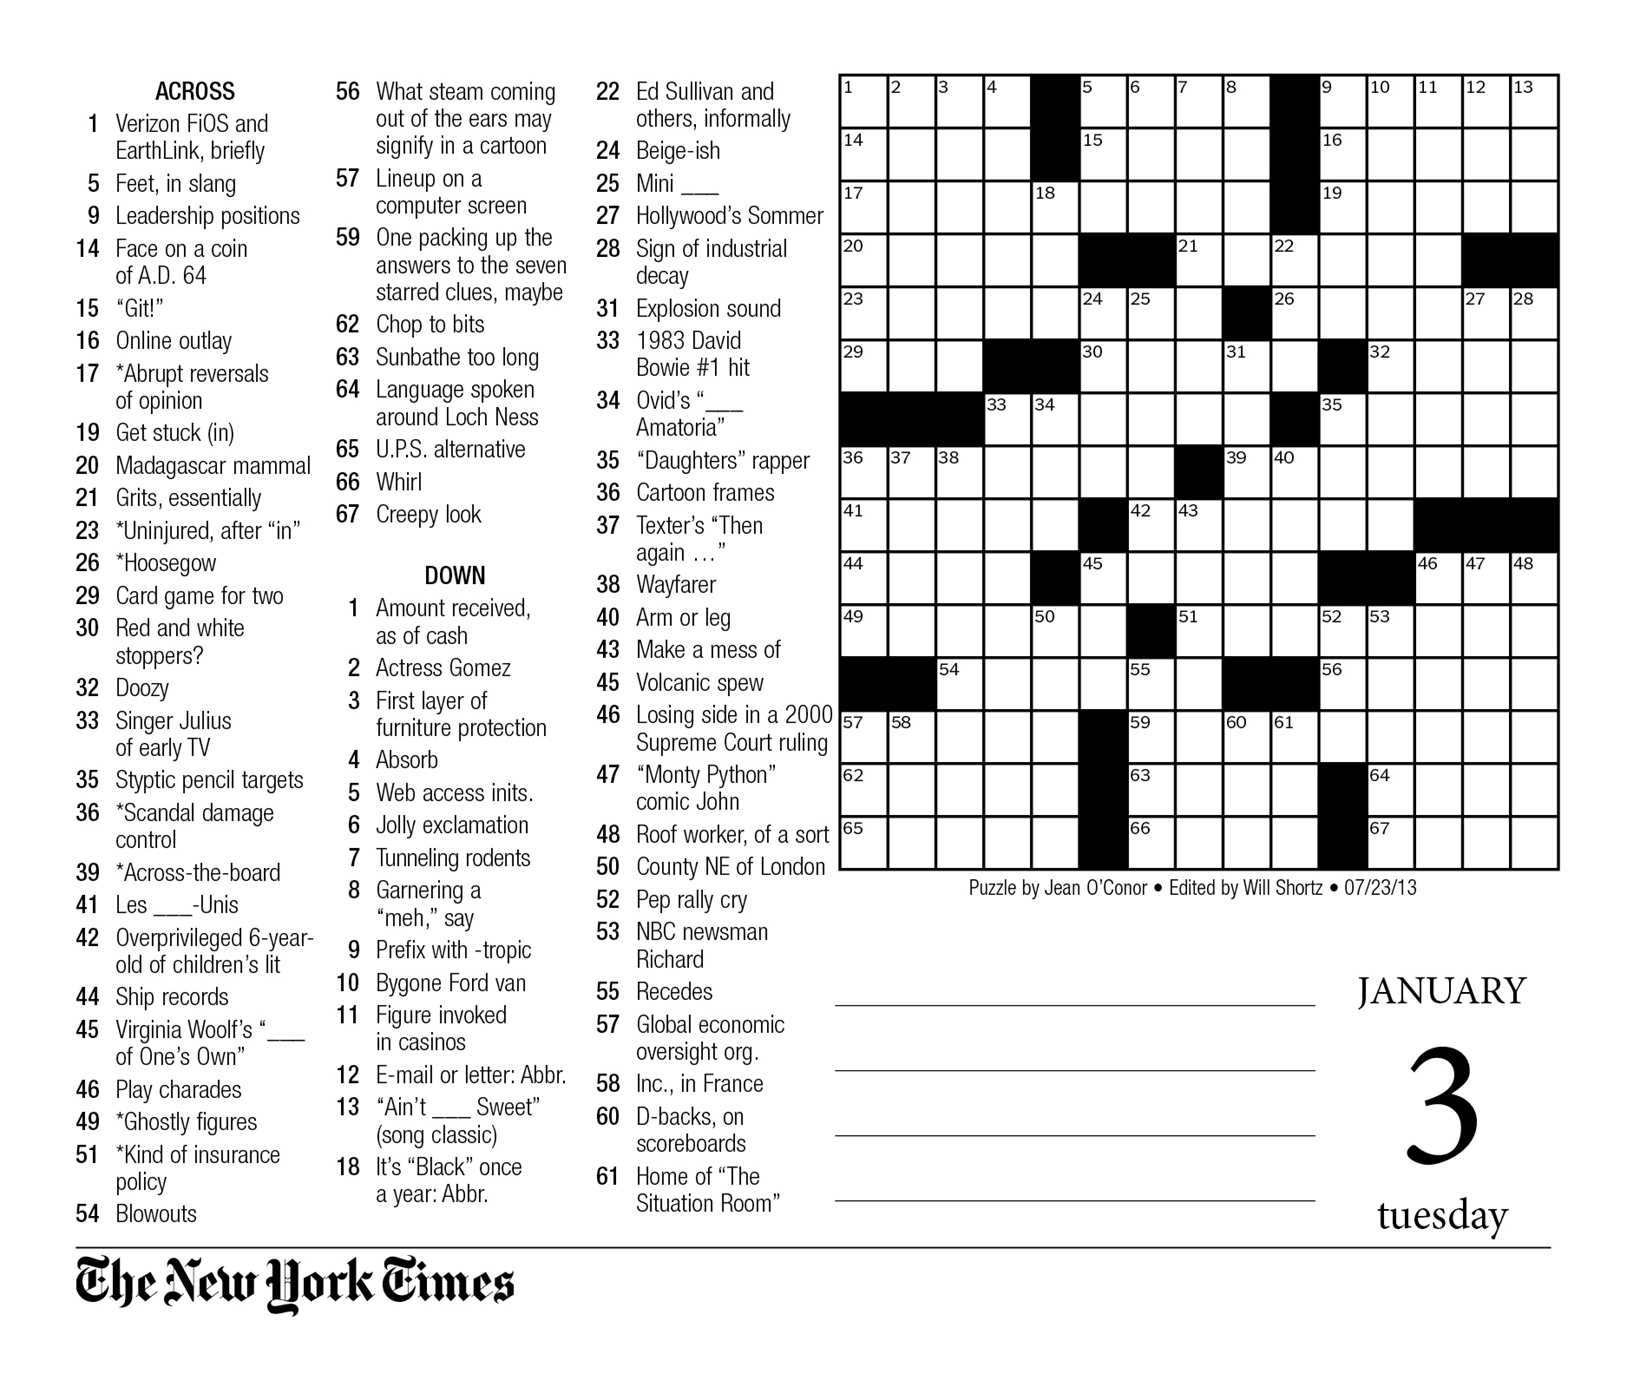 picture regarding Printable Ny Times Crossword Puzzles called The Fresh new York Days Crosswords 2017 Working day-in direction of-Working day Calendar: The